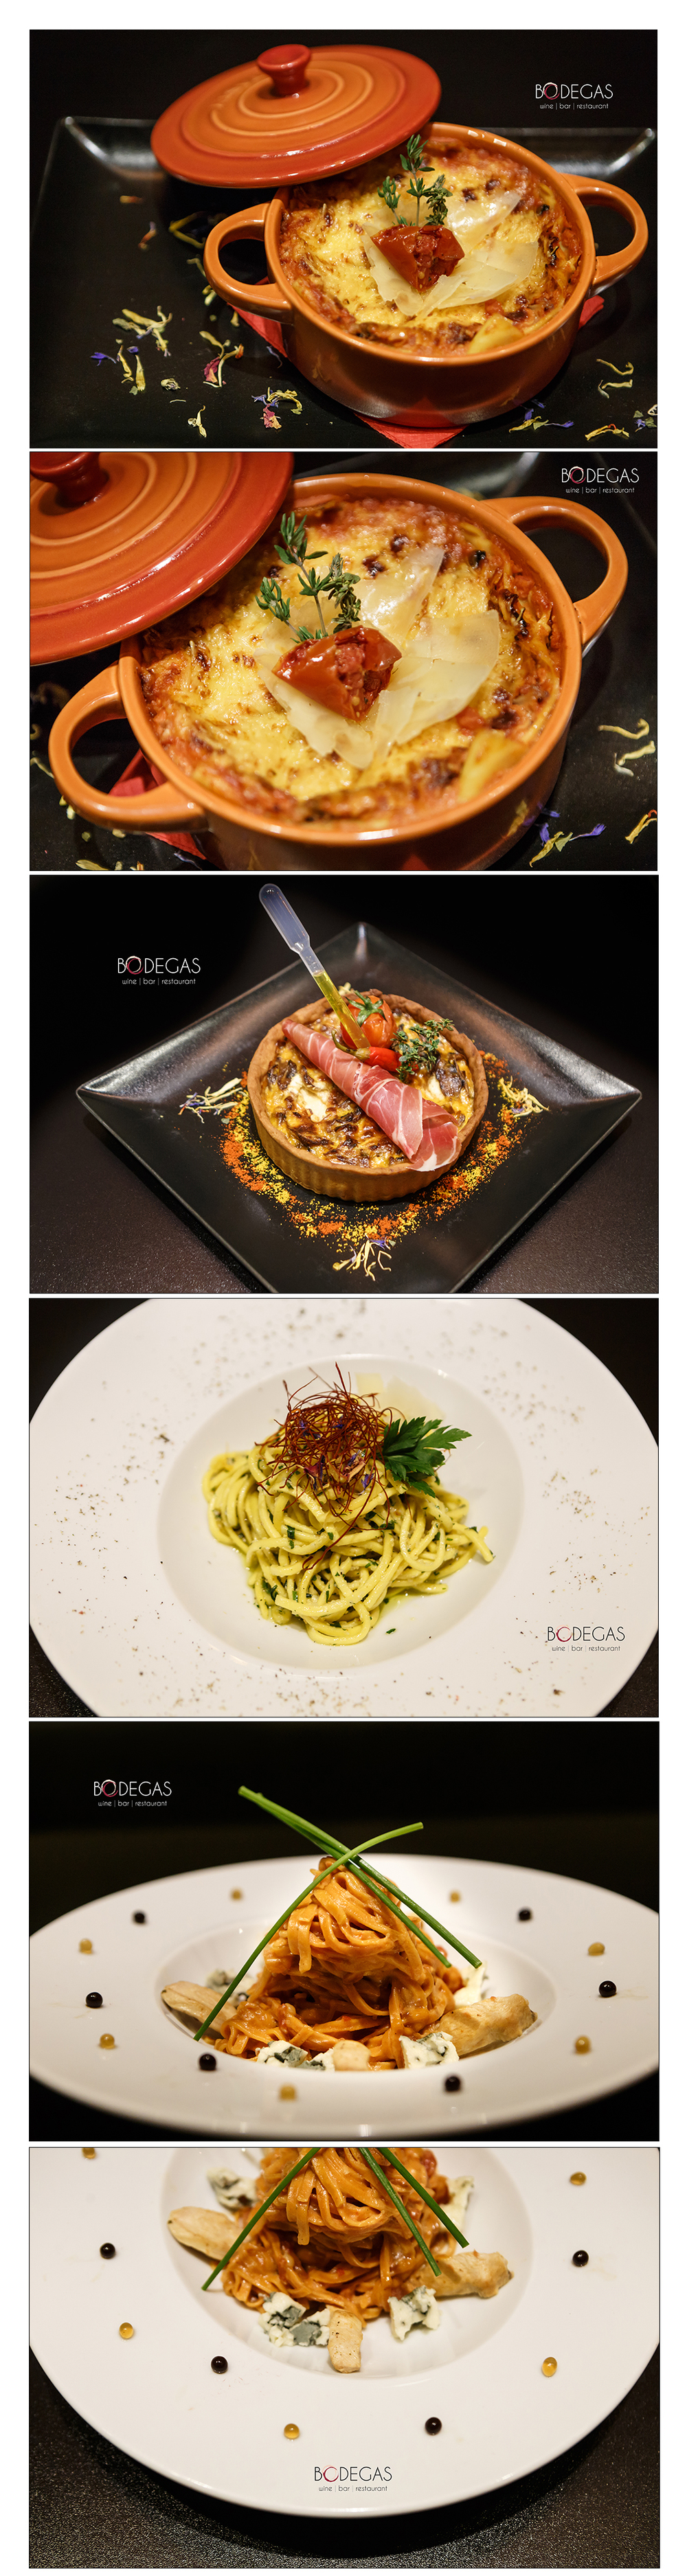 IOANNIS ANDRIOPOULOS_FOOD PHOTOGRAPHY_BODEGAS_PATRA 1